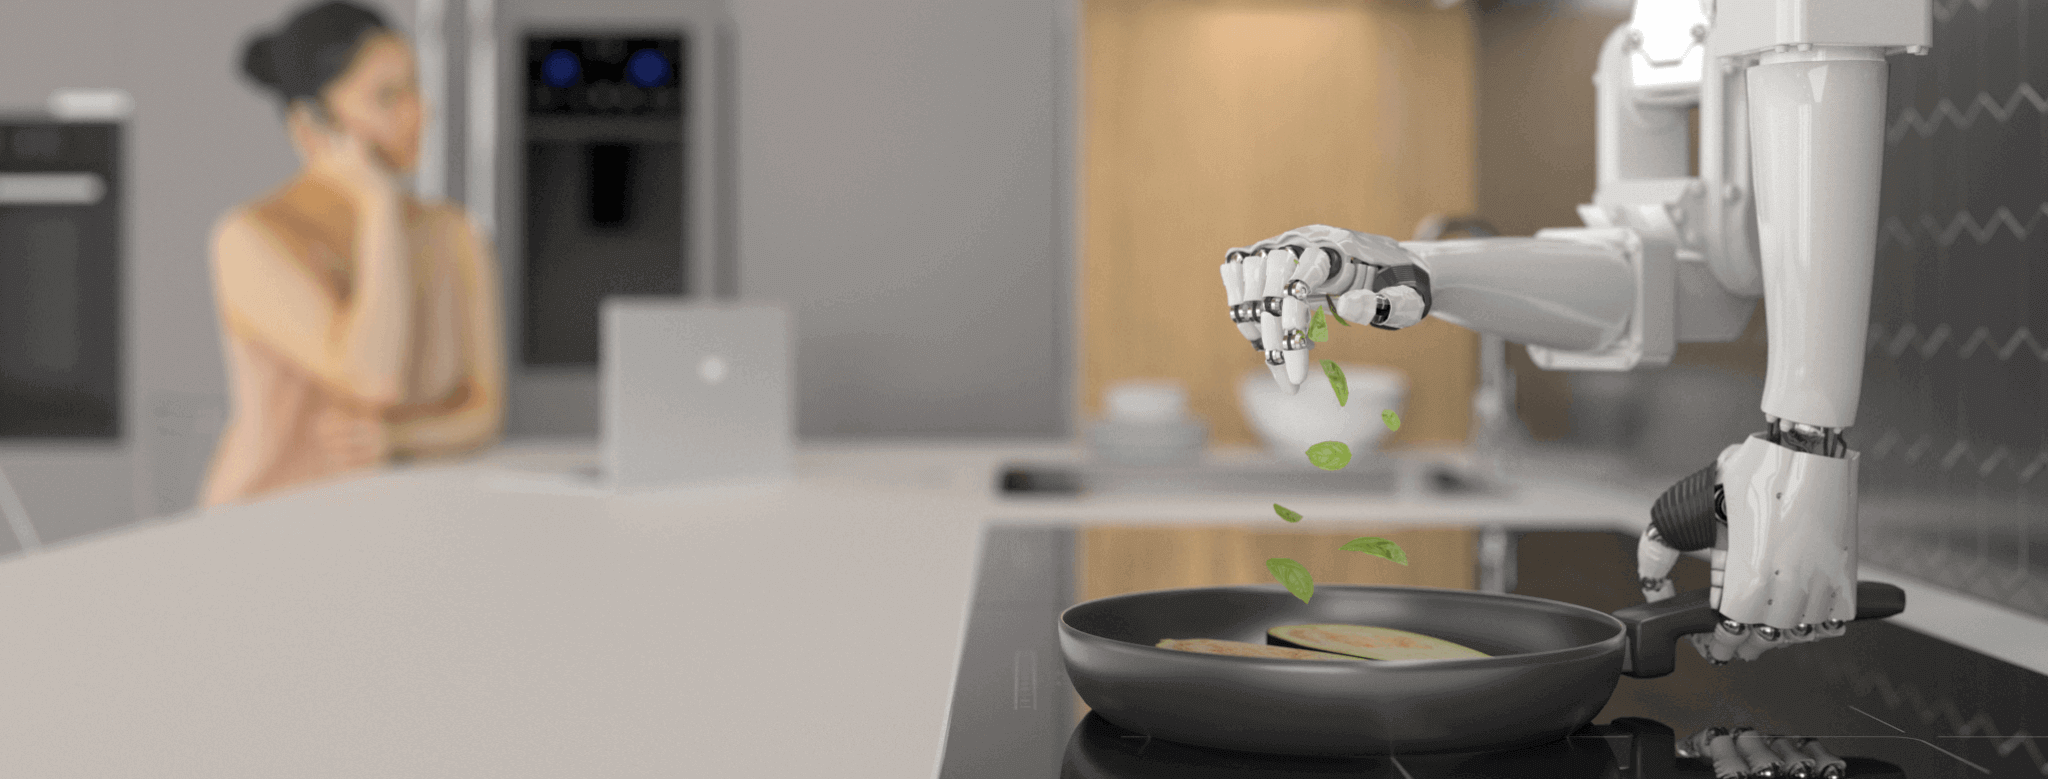 Automated Kitchen Opengrowth